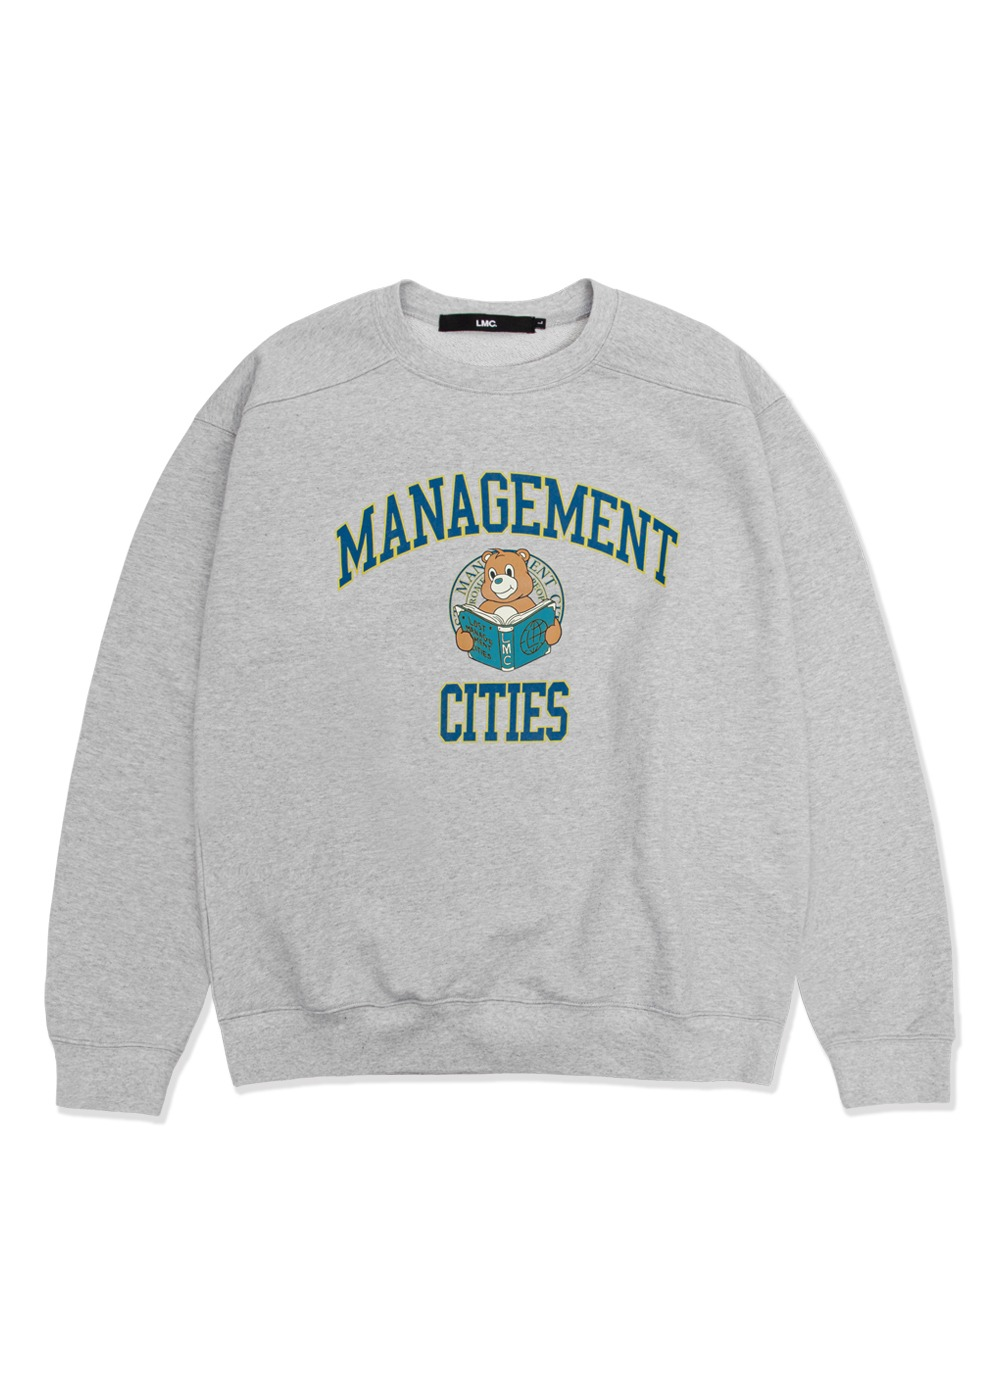 LMC UNIV BEAR SWEATSHIRT heather gray